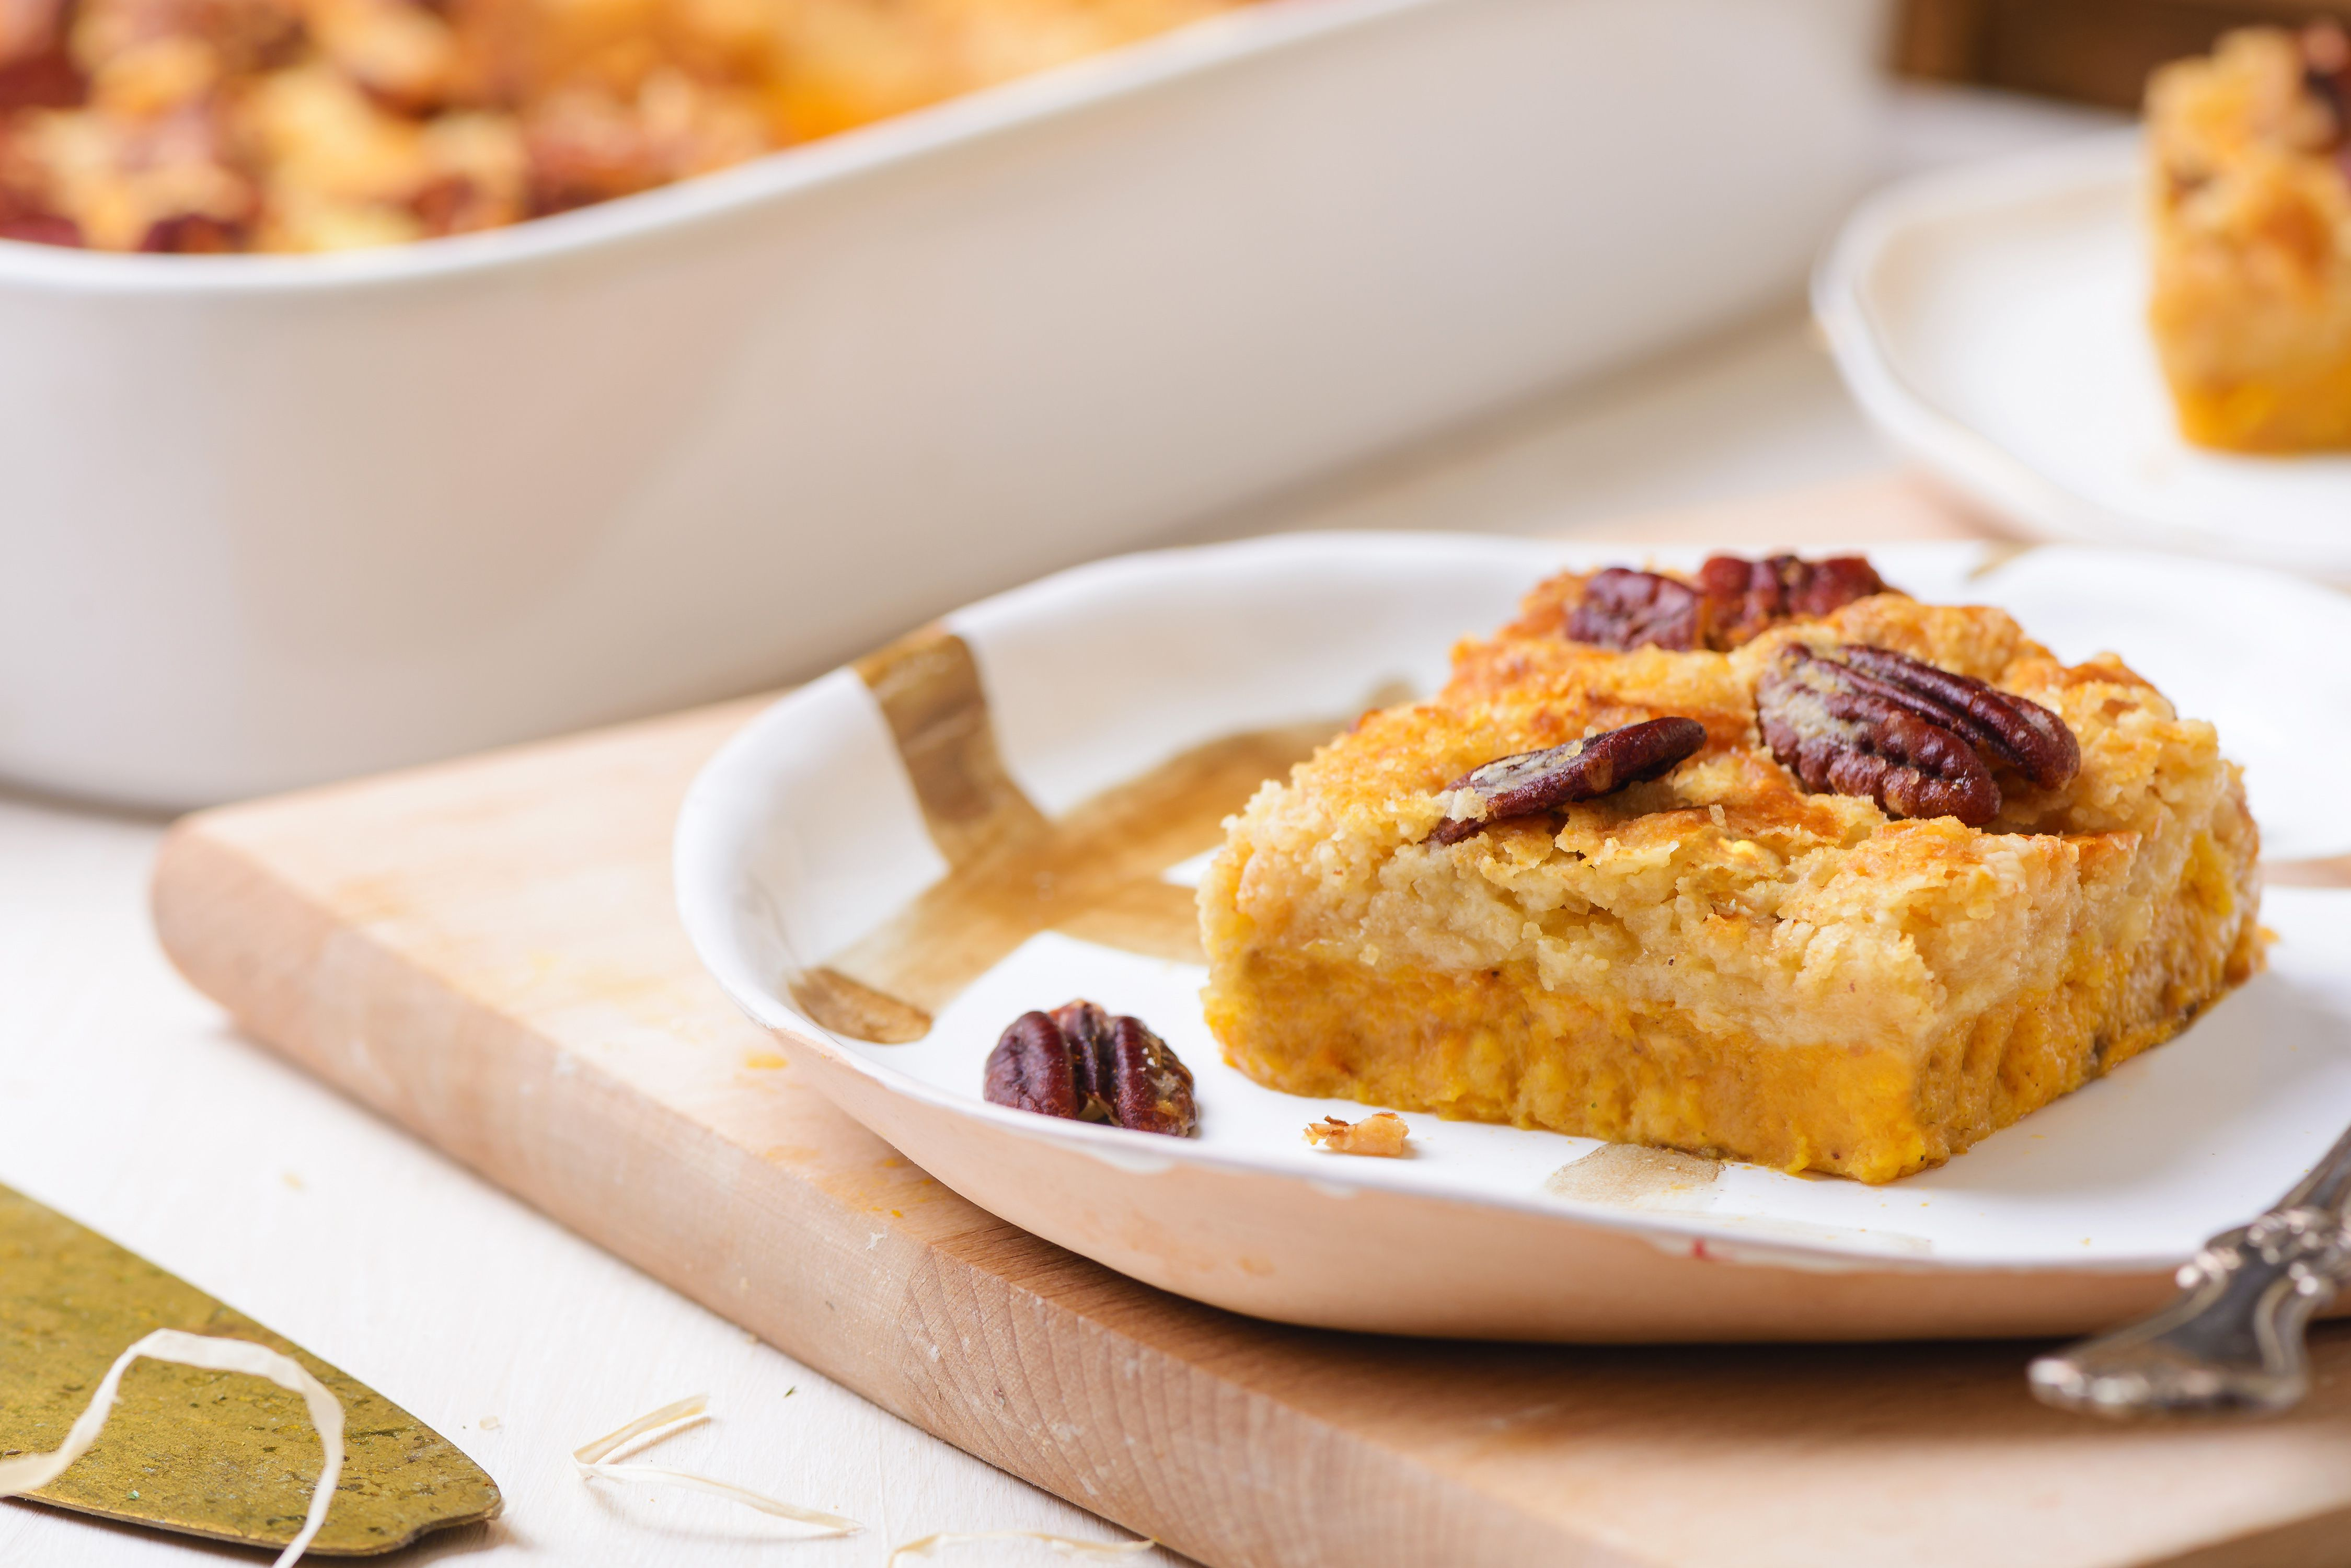 Easy pumpkin dump cake with nuts on a plate